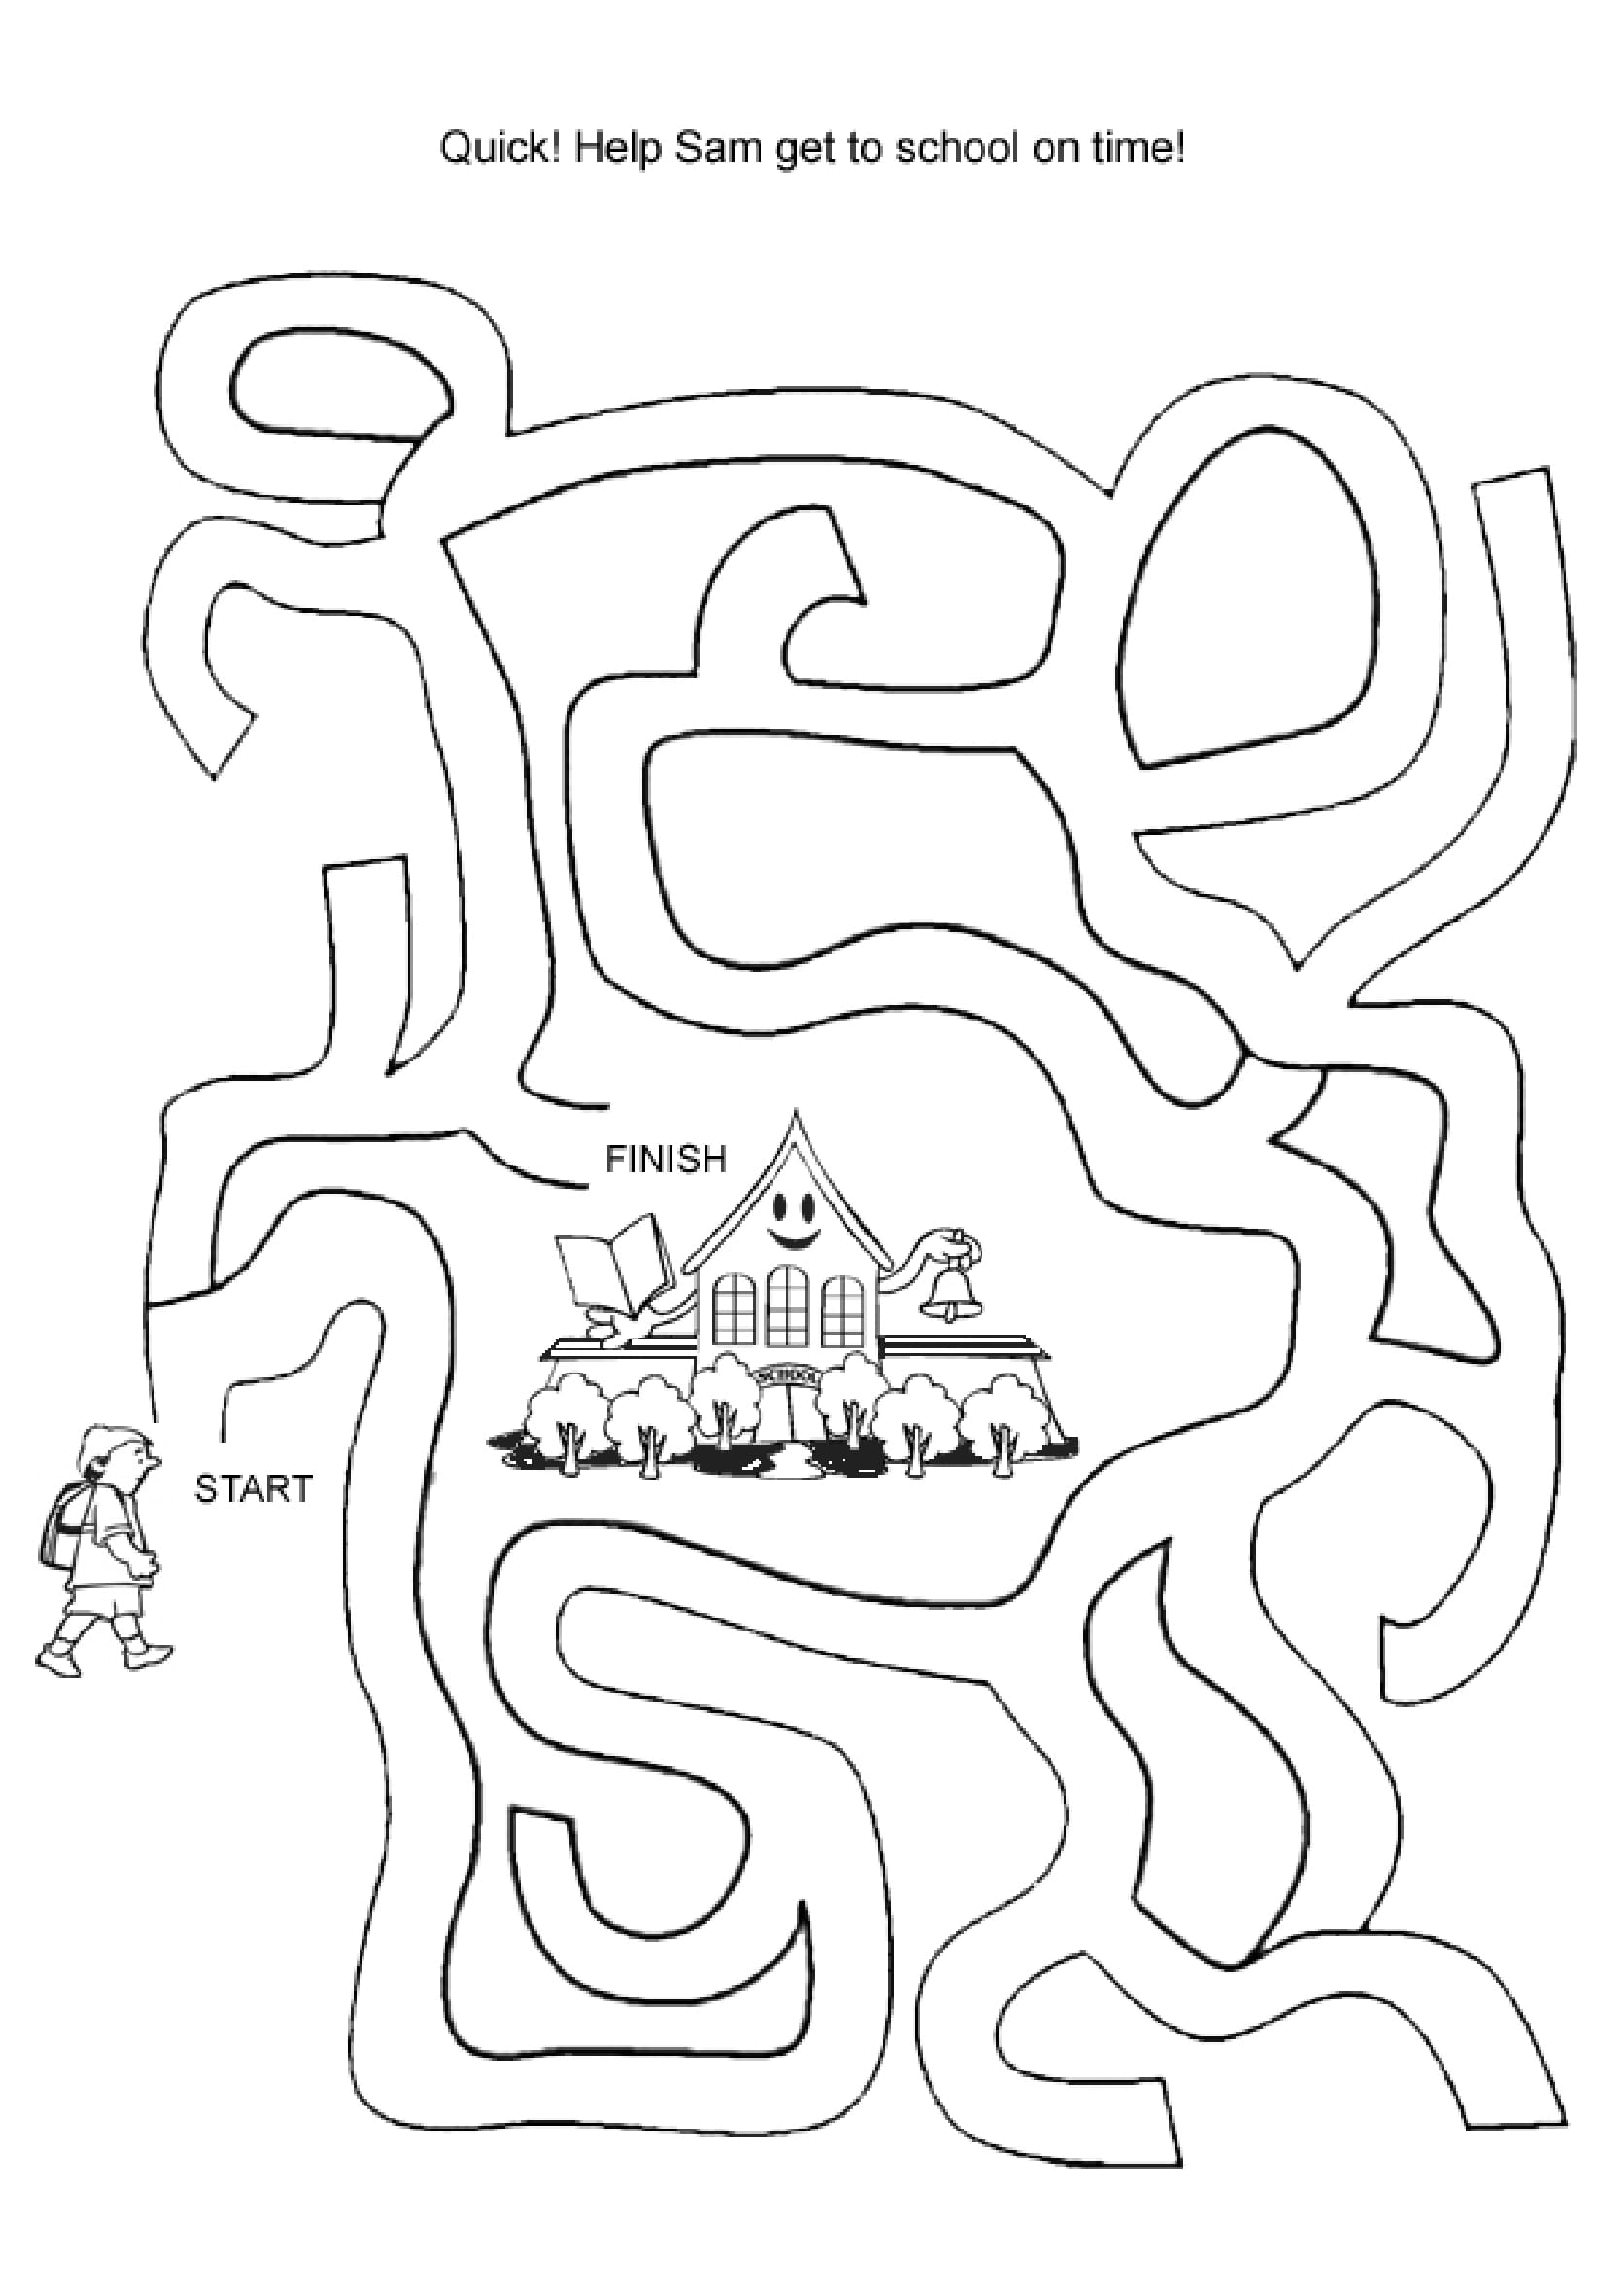 Easy Mazes Printable Mazes For Kids